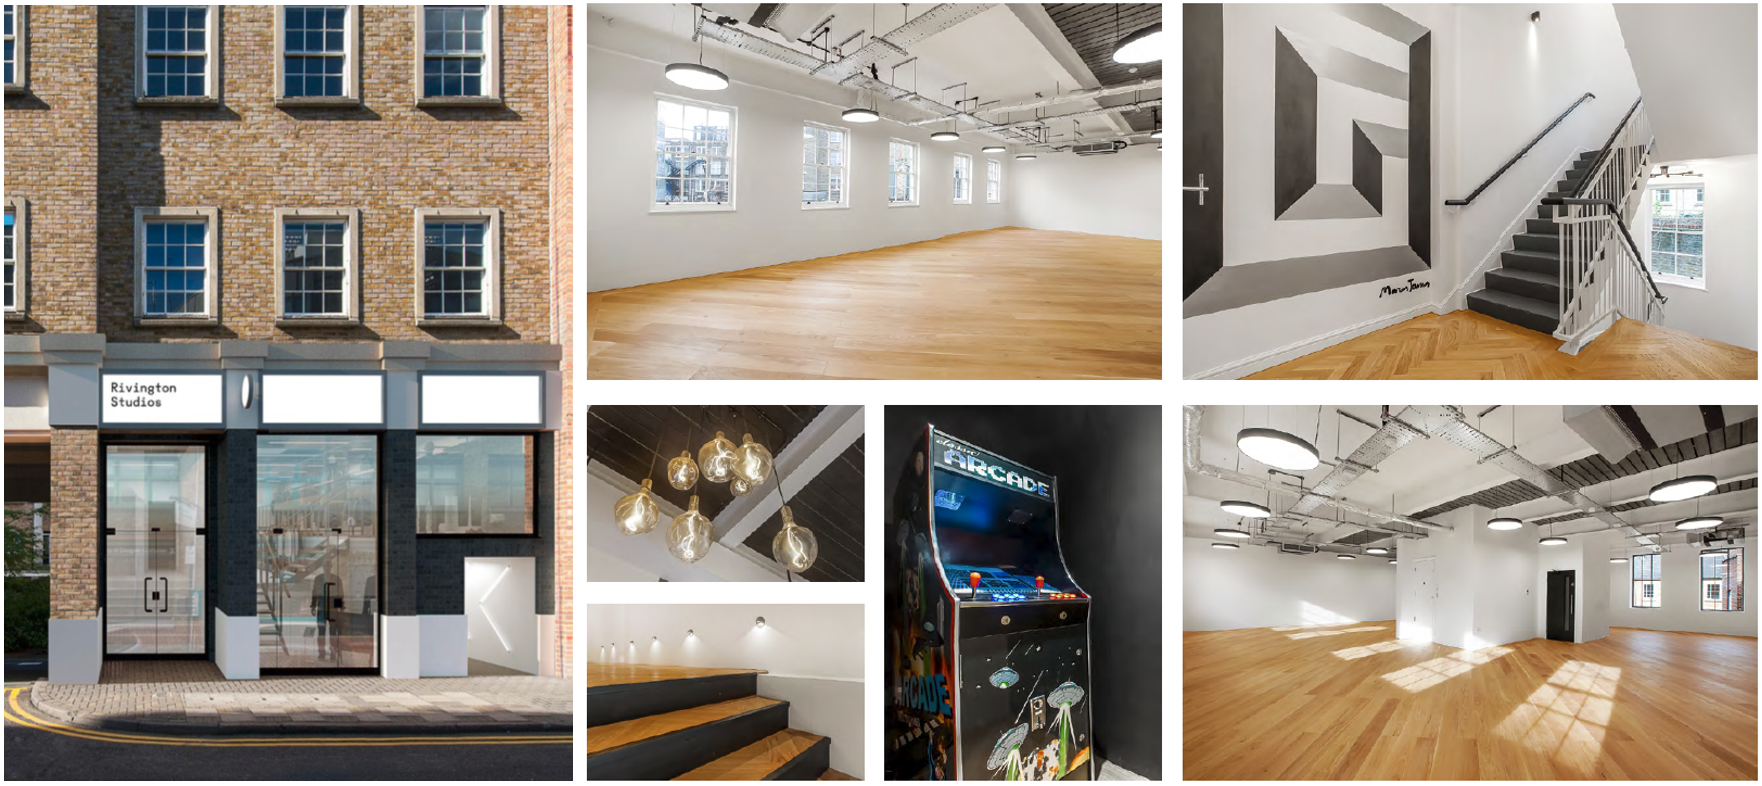 Photo collage of Rivington Studios, a commercial property let by Anton Page